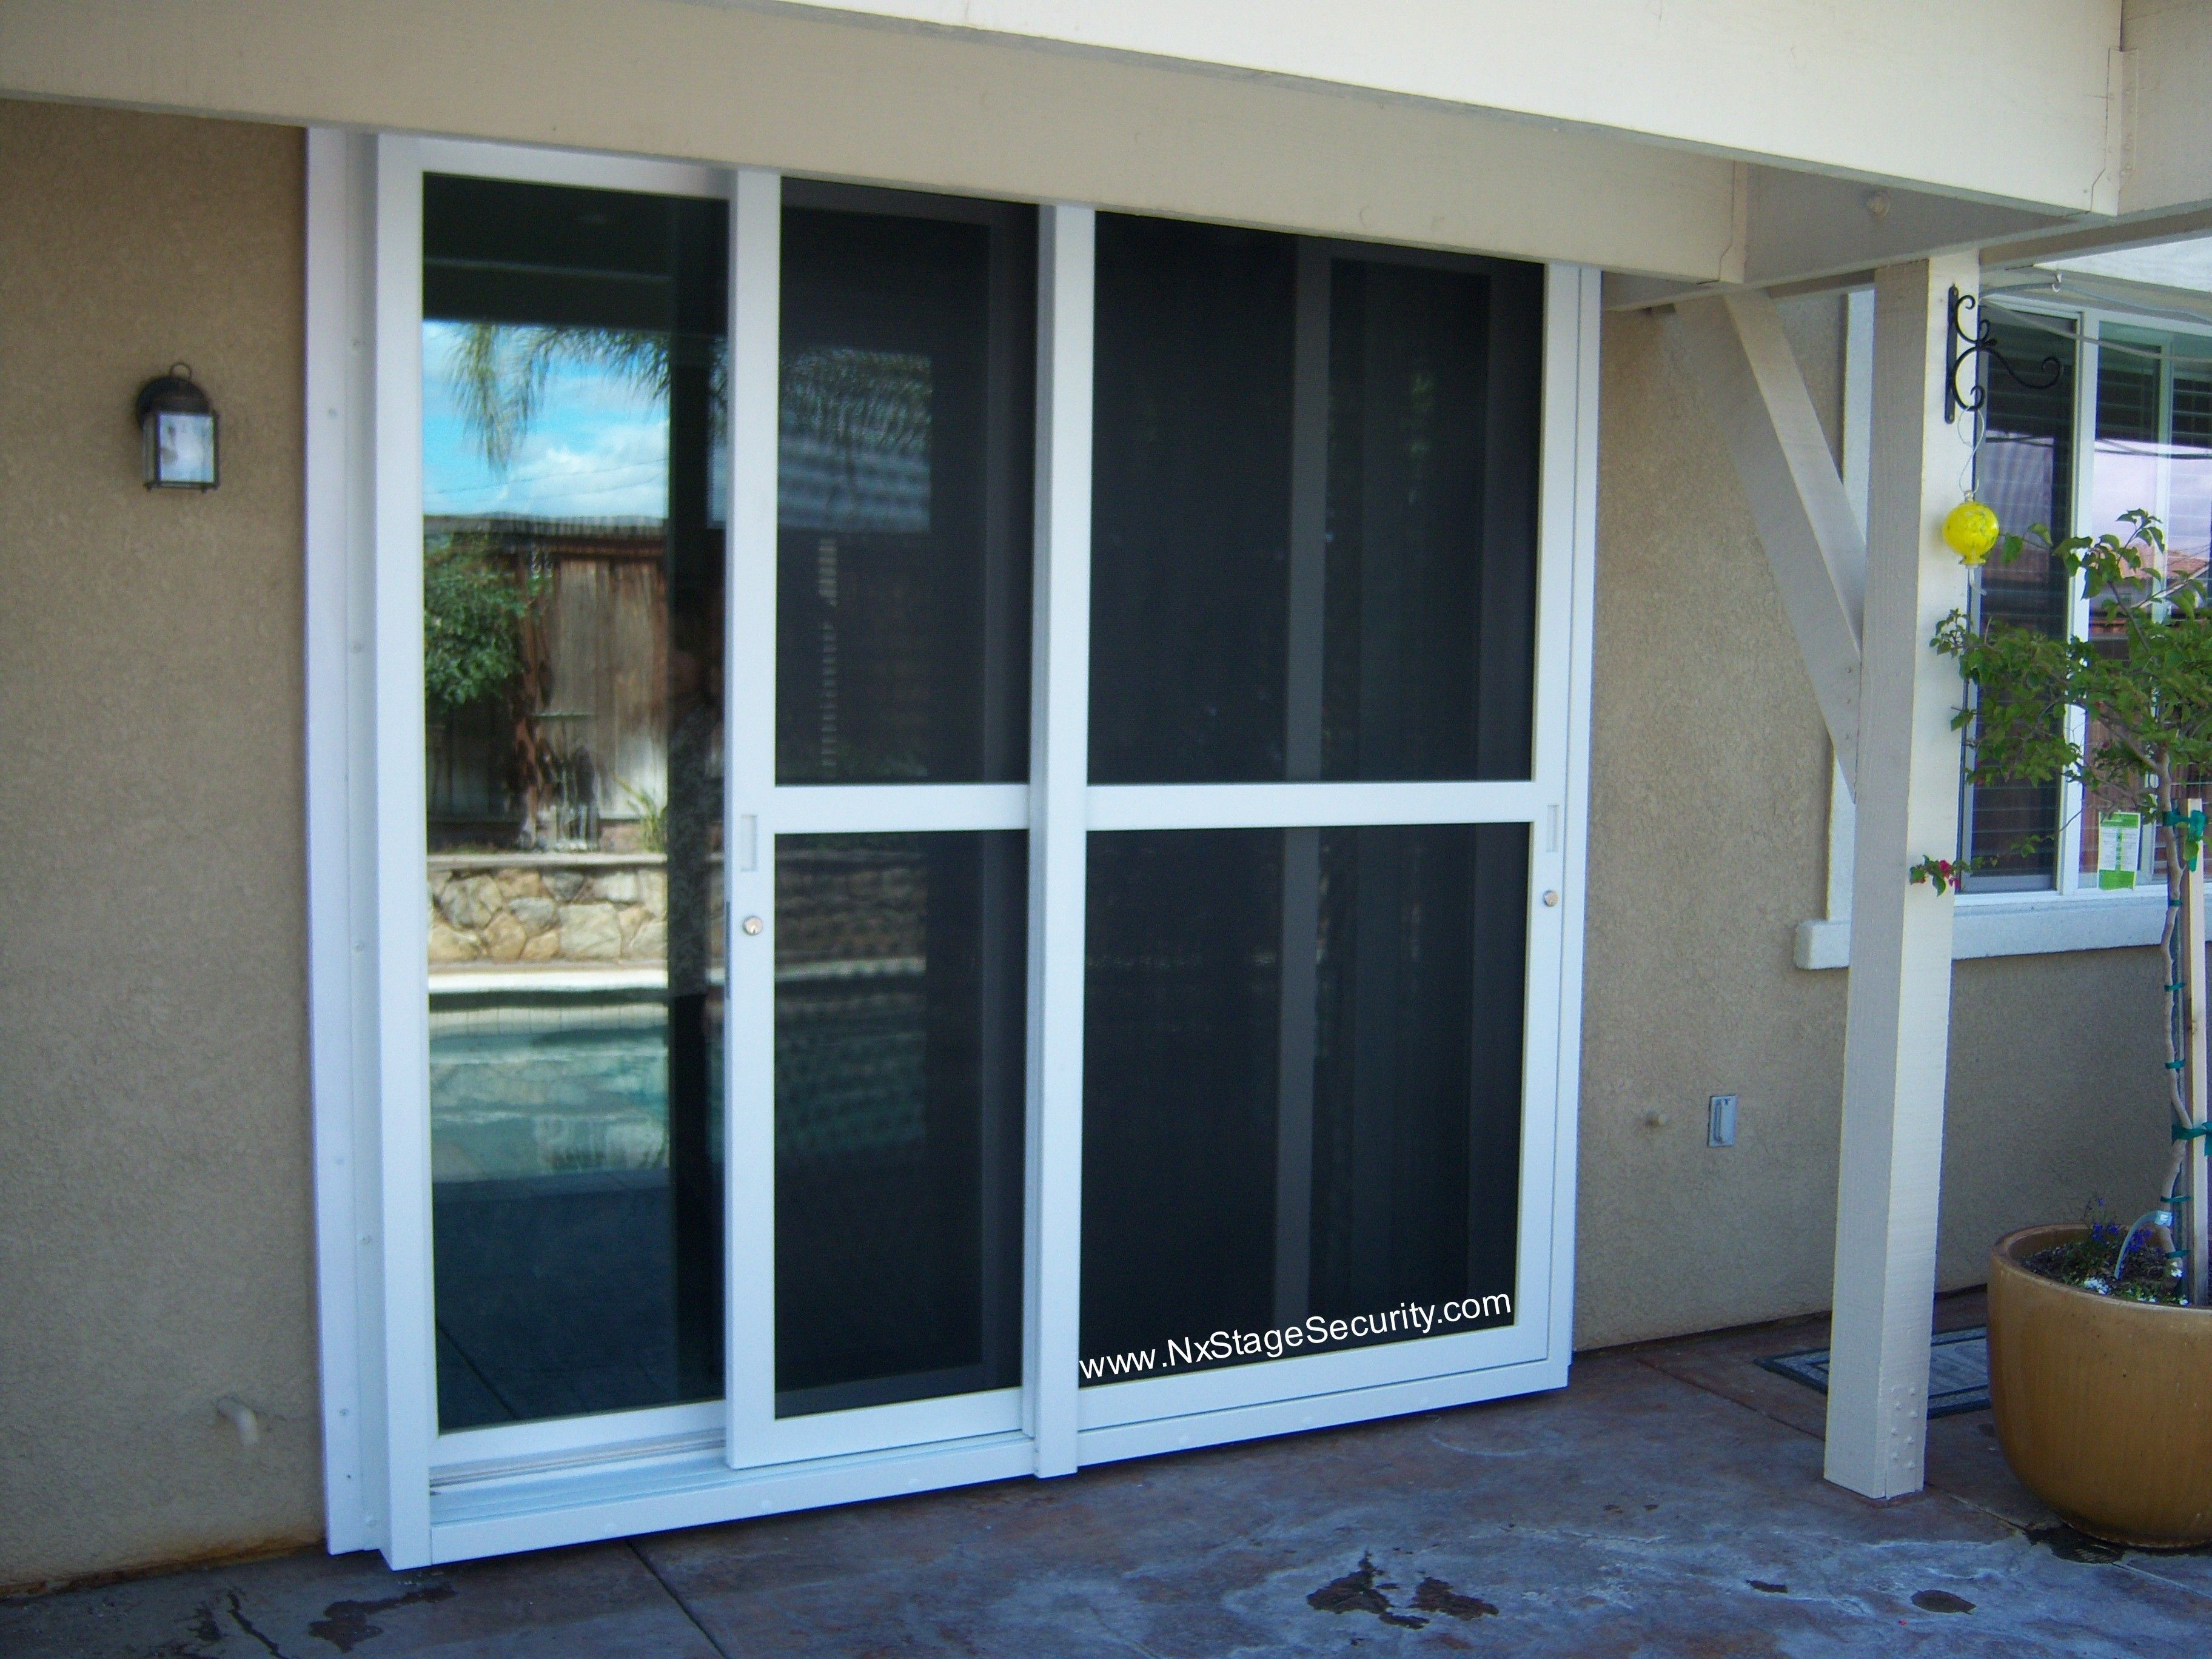 Sliding Security Doors By Nx Stage Security Sliding Screen Doors Security Door Security Screen